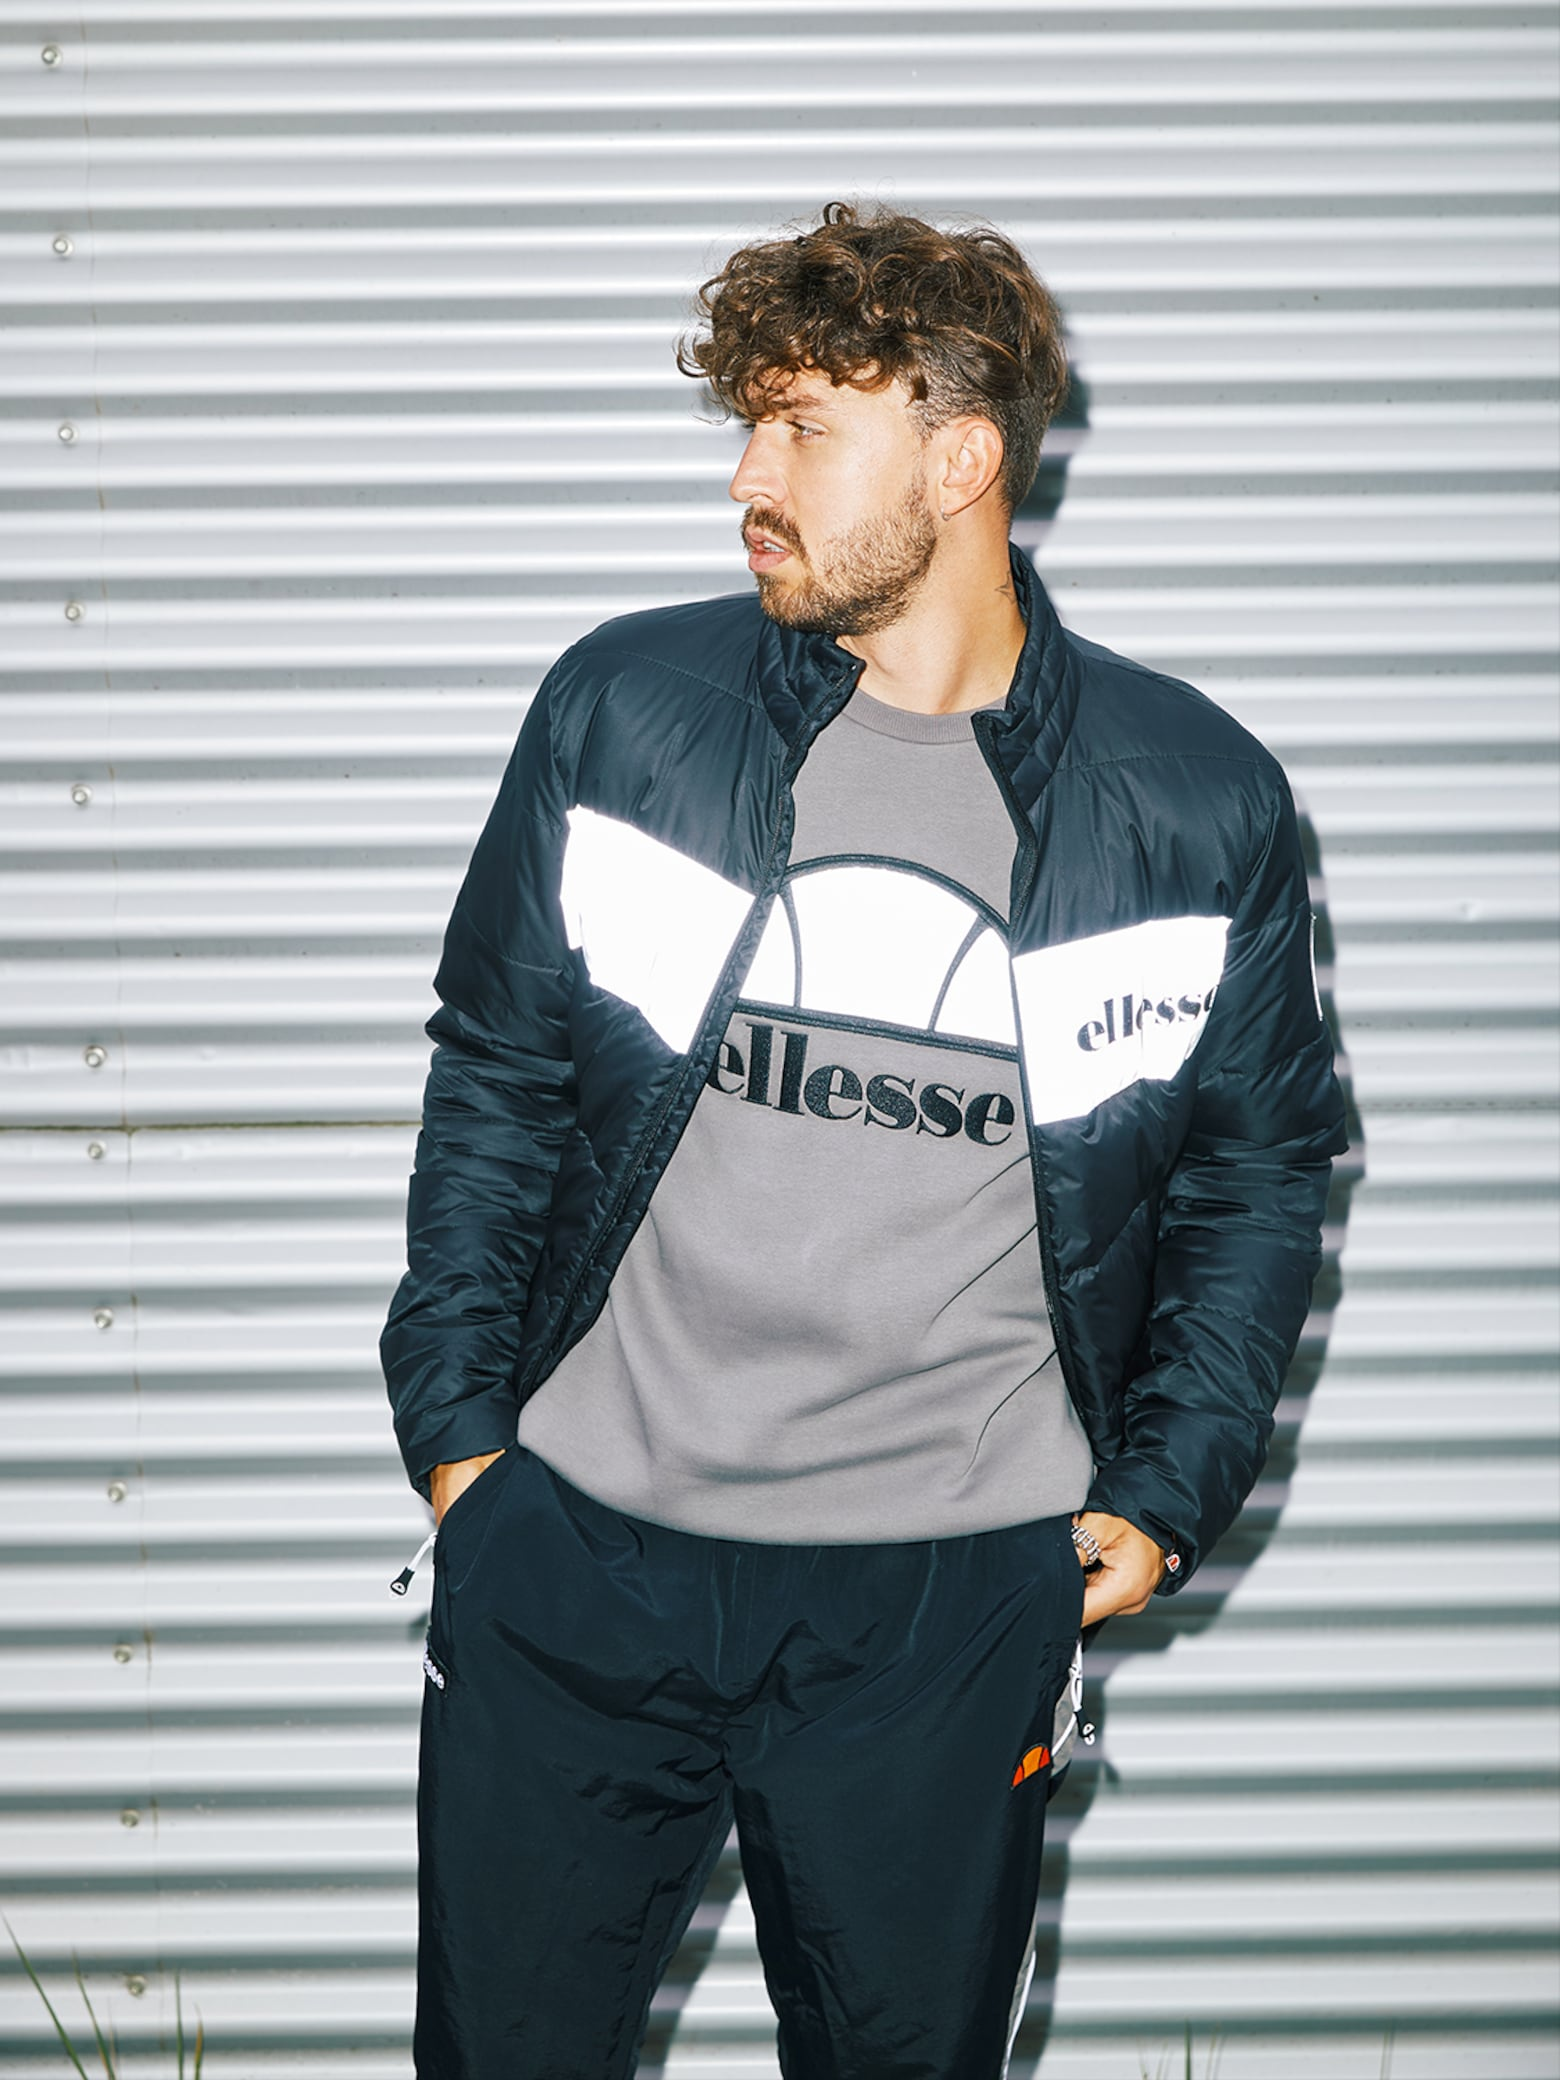 New rules. Always on point. Ellesse